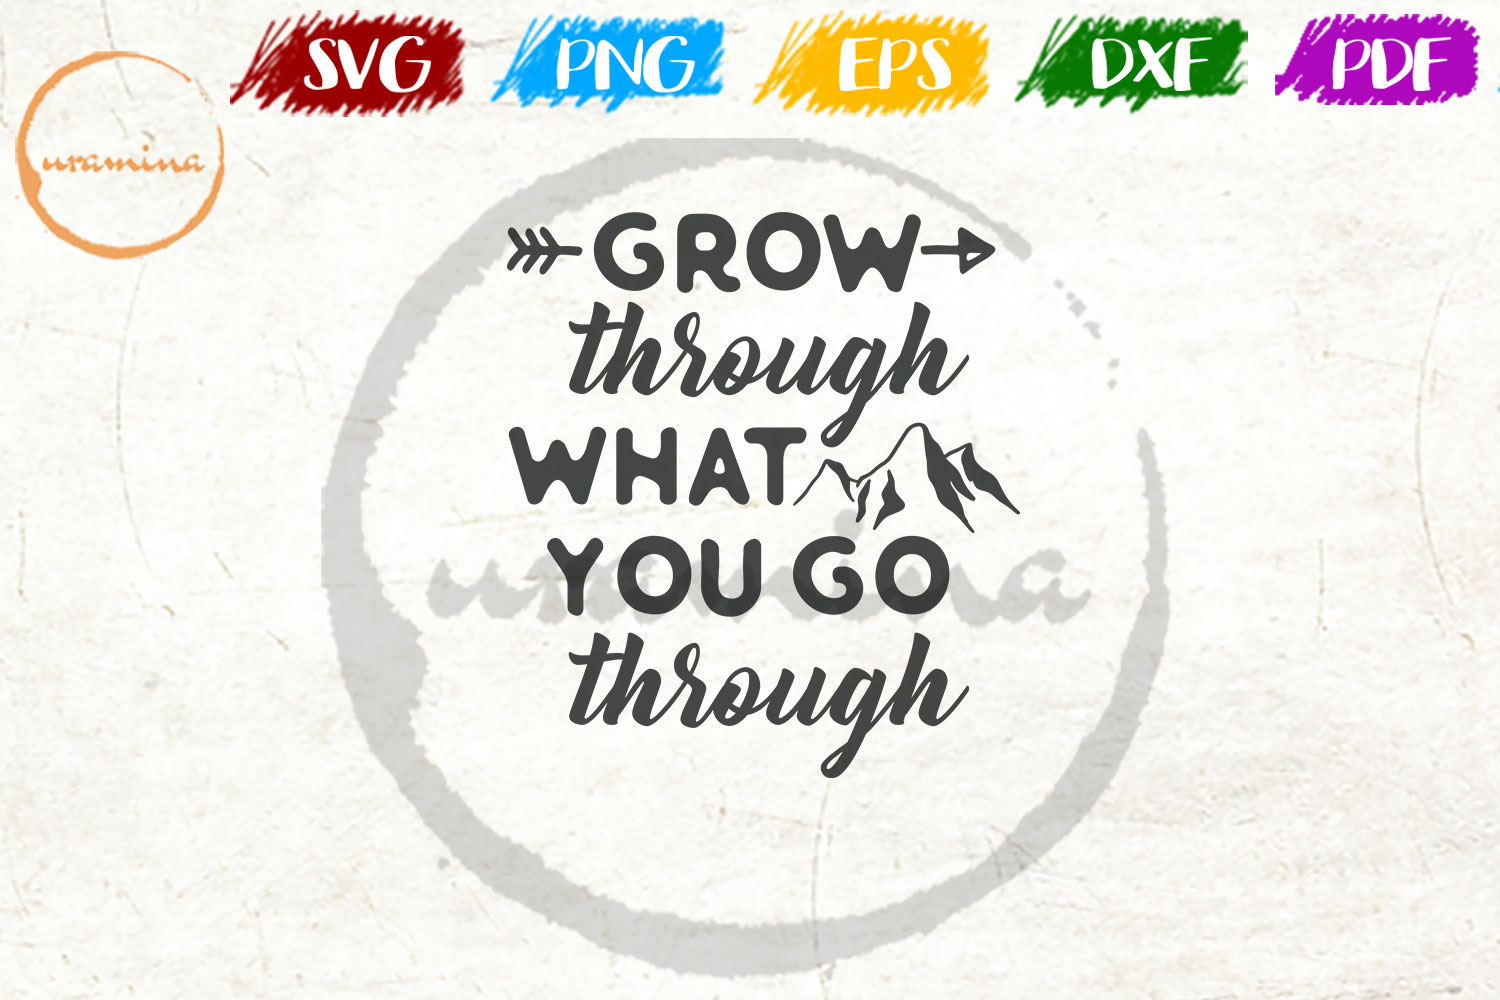 Download Free Grow Through What You Go Through Graphic By Uramina Creative for Cricut Explore, Silhouette and other cutting machines.